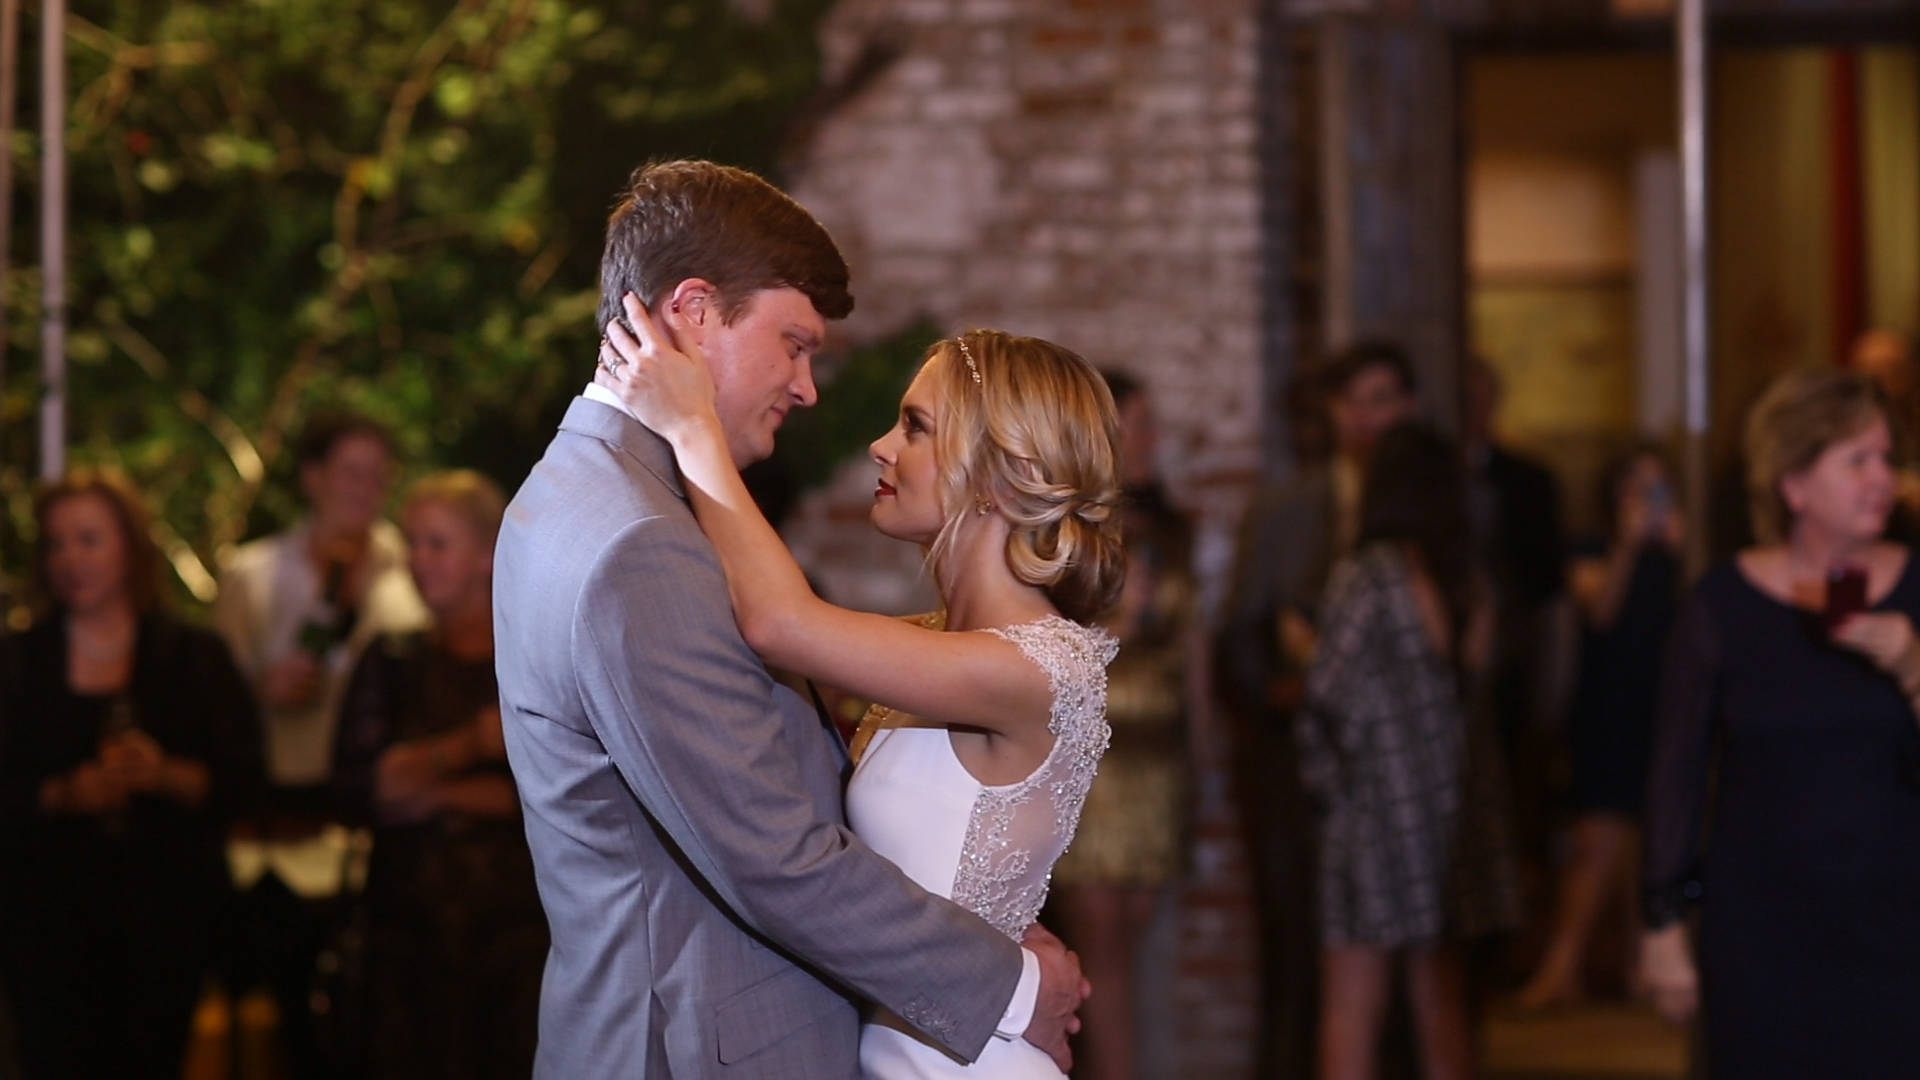 The first dance was so romantic underneath the dreamy lighting of Race and Religious.